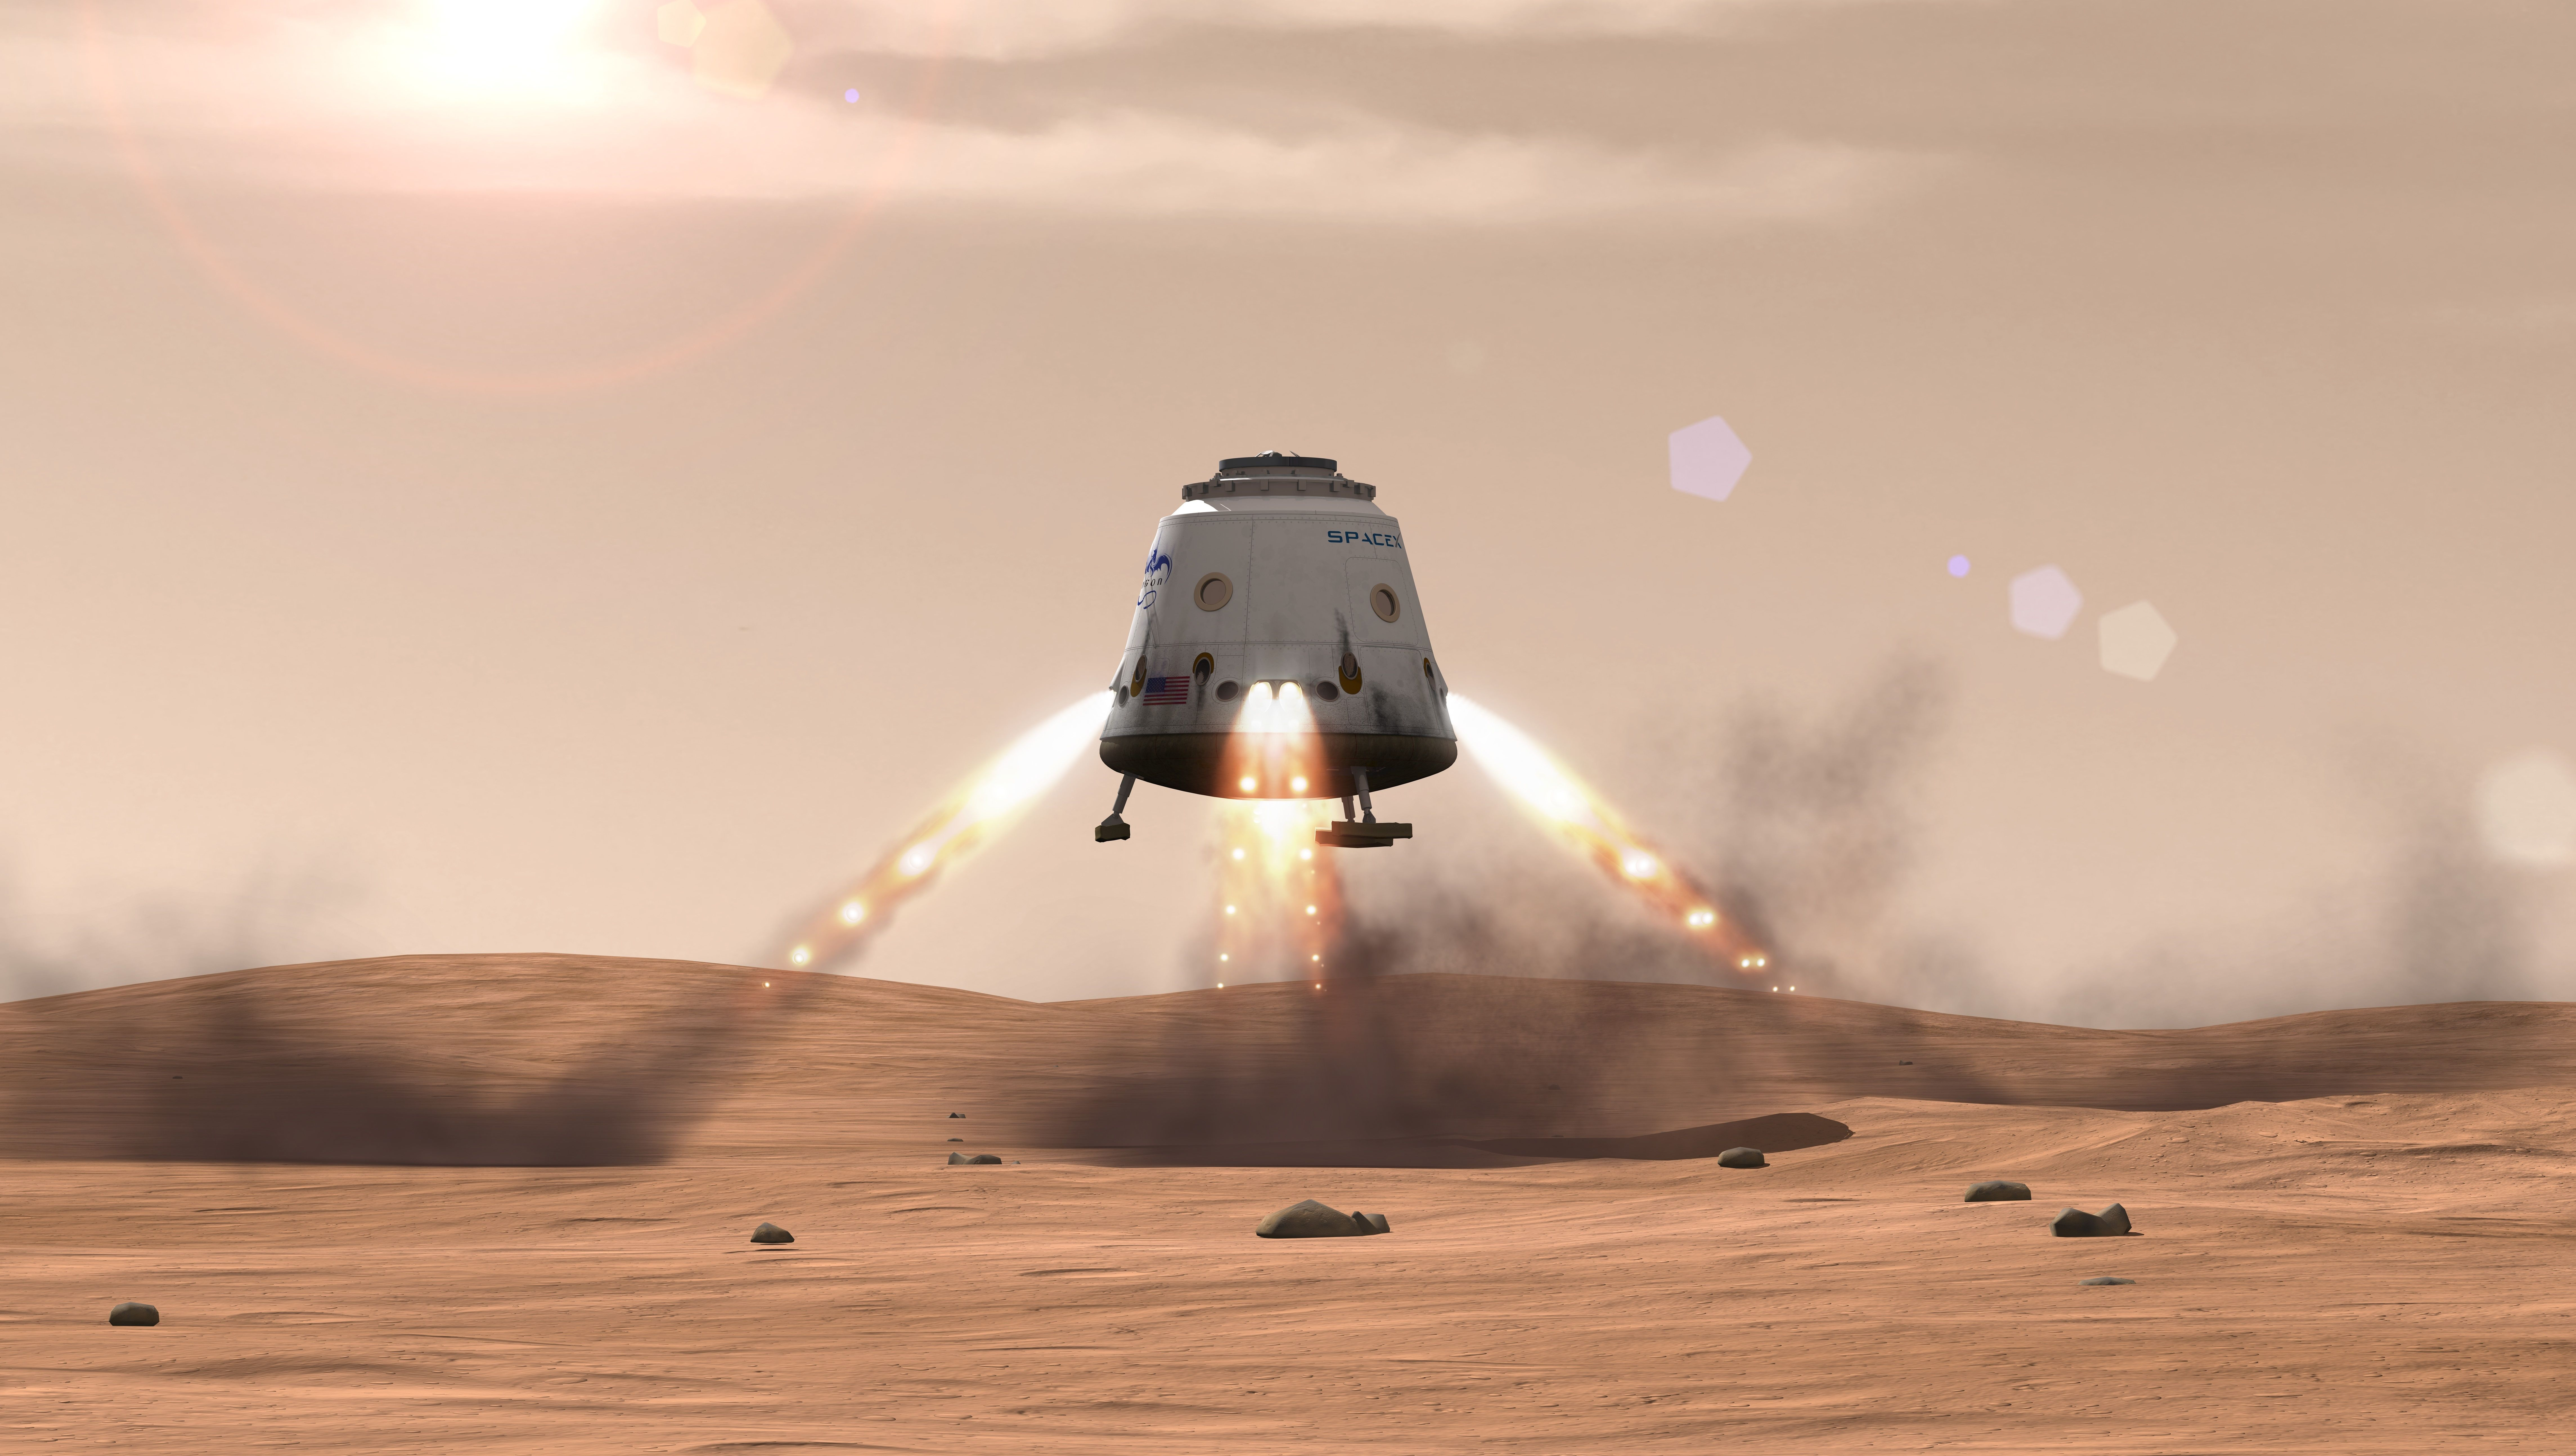 Project 'Red Dragon': Mars Sample-Return Mission Could Launch in 2022 with SpaceX Capsule